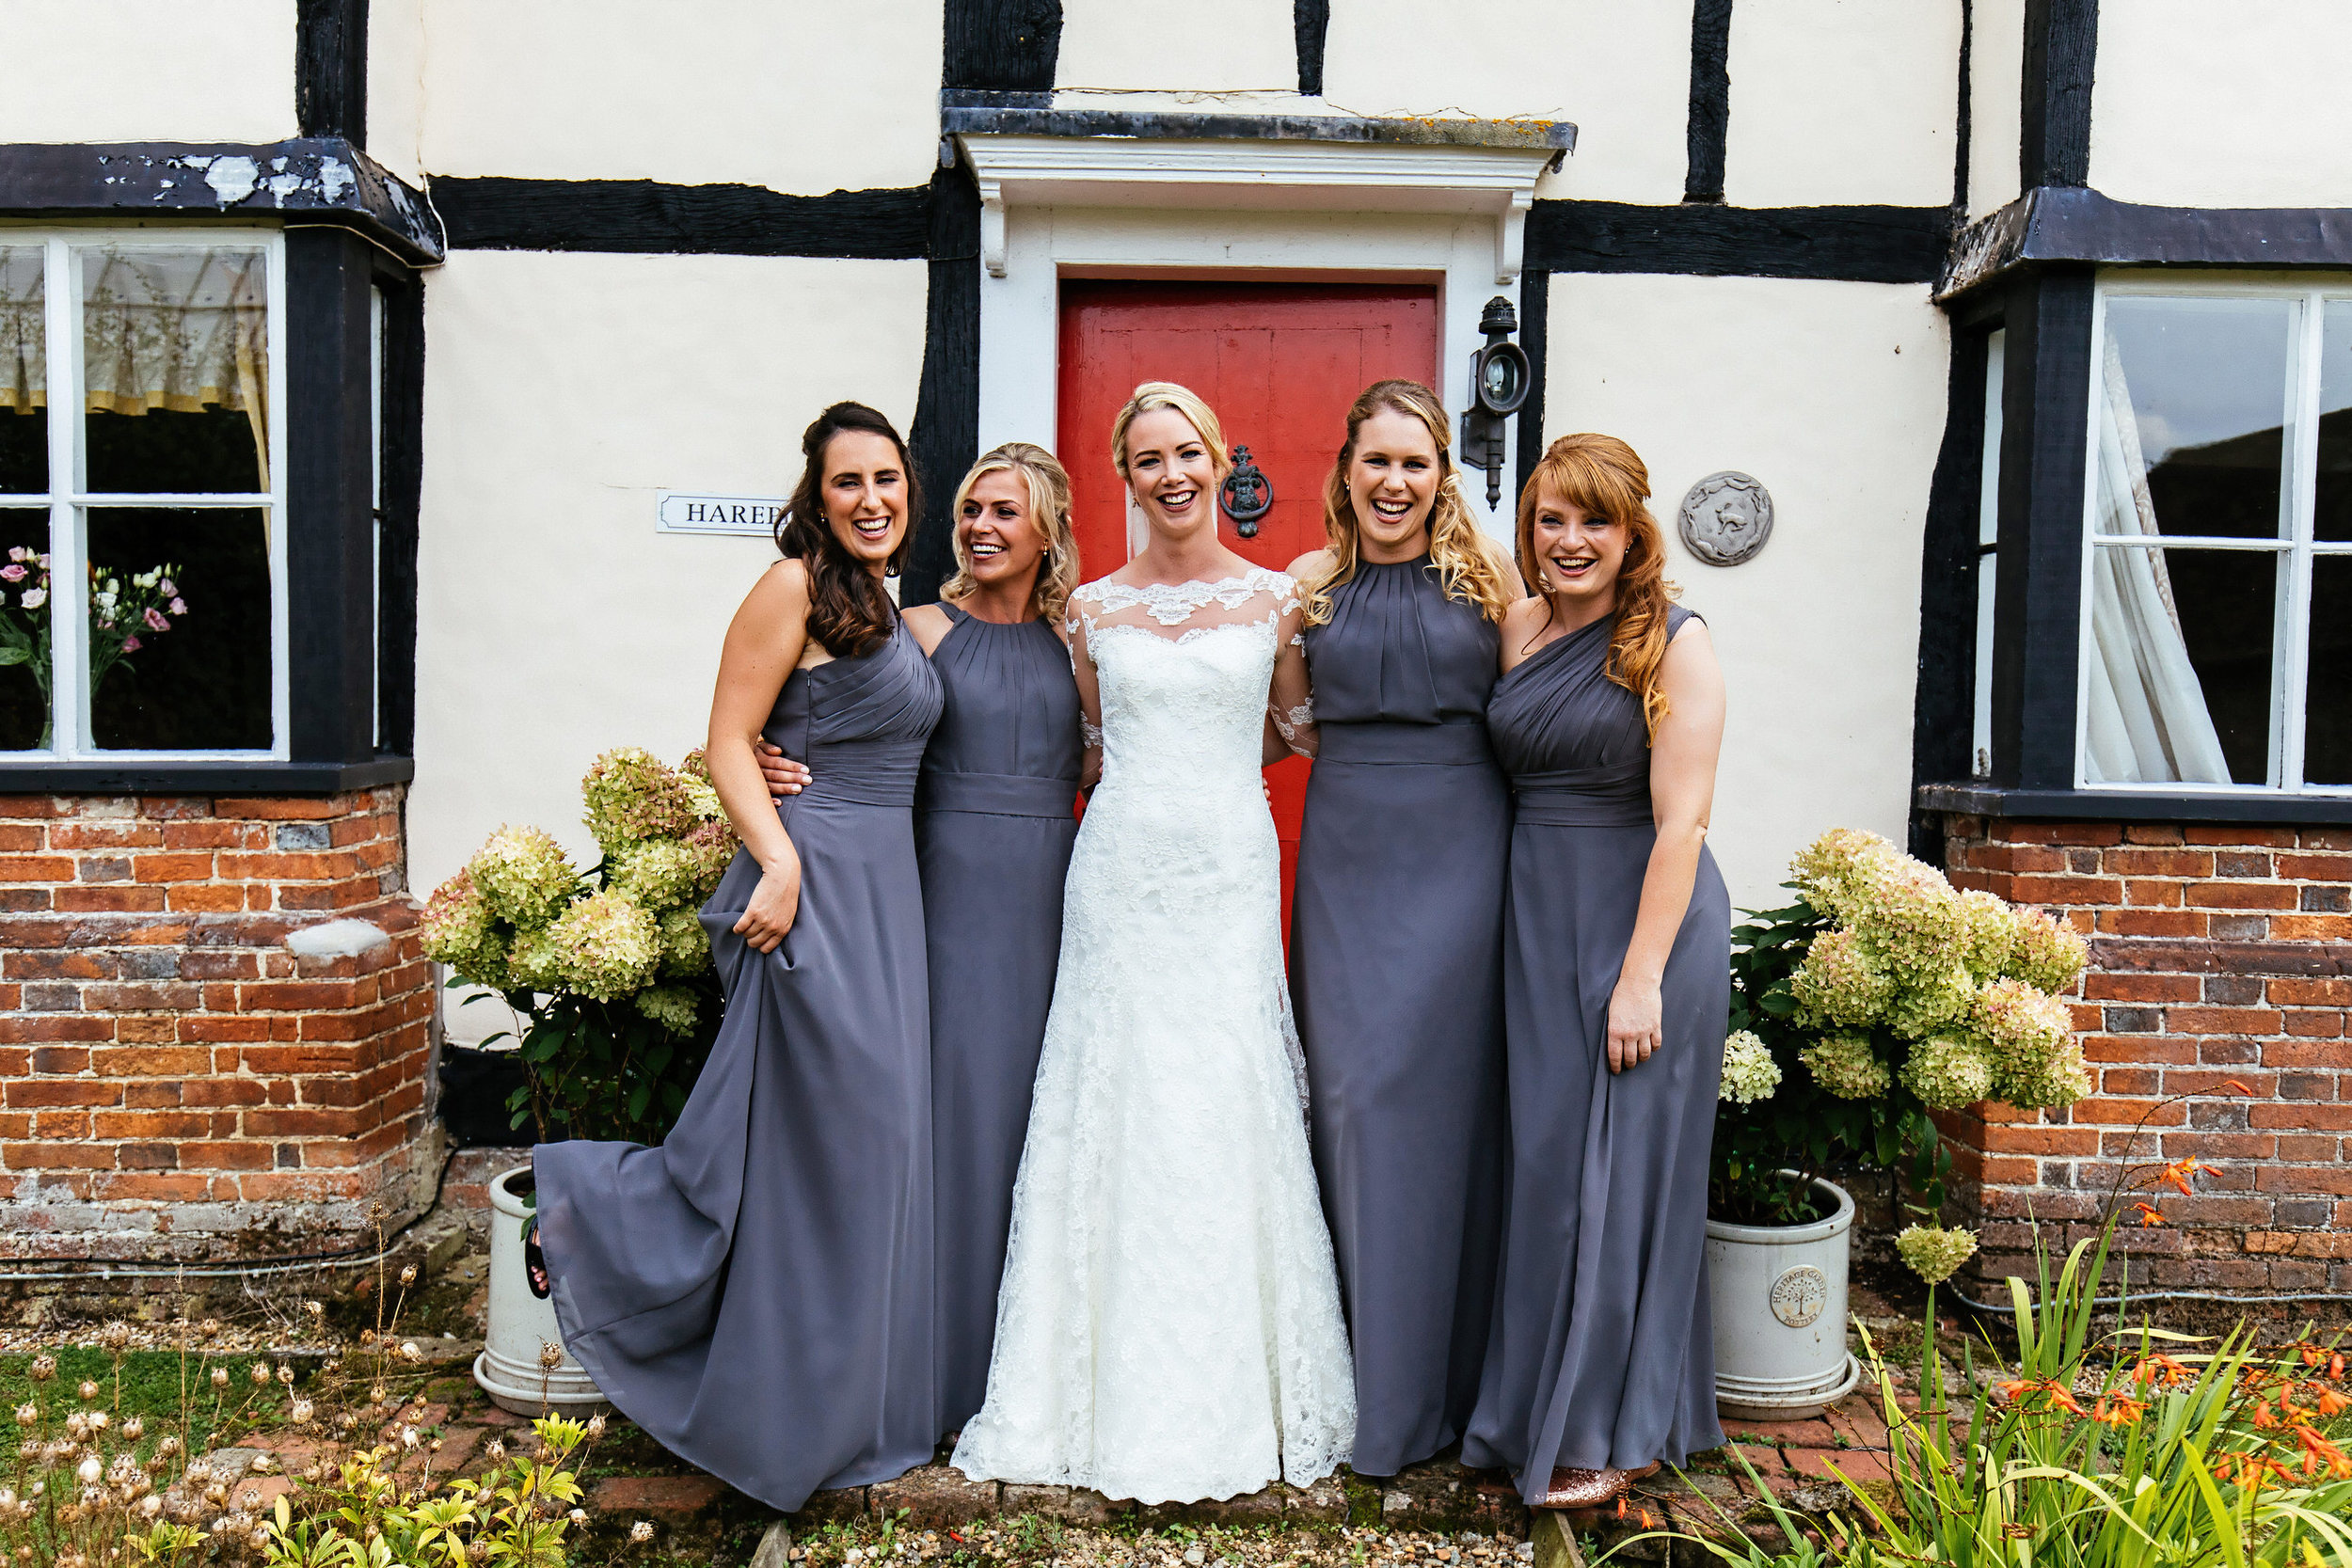 Biddenden Wedding Photographer 0029.jpg